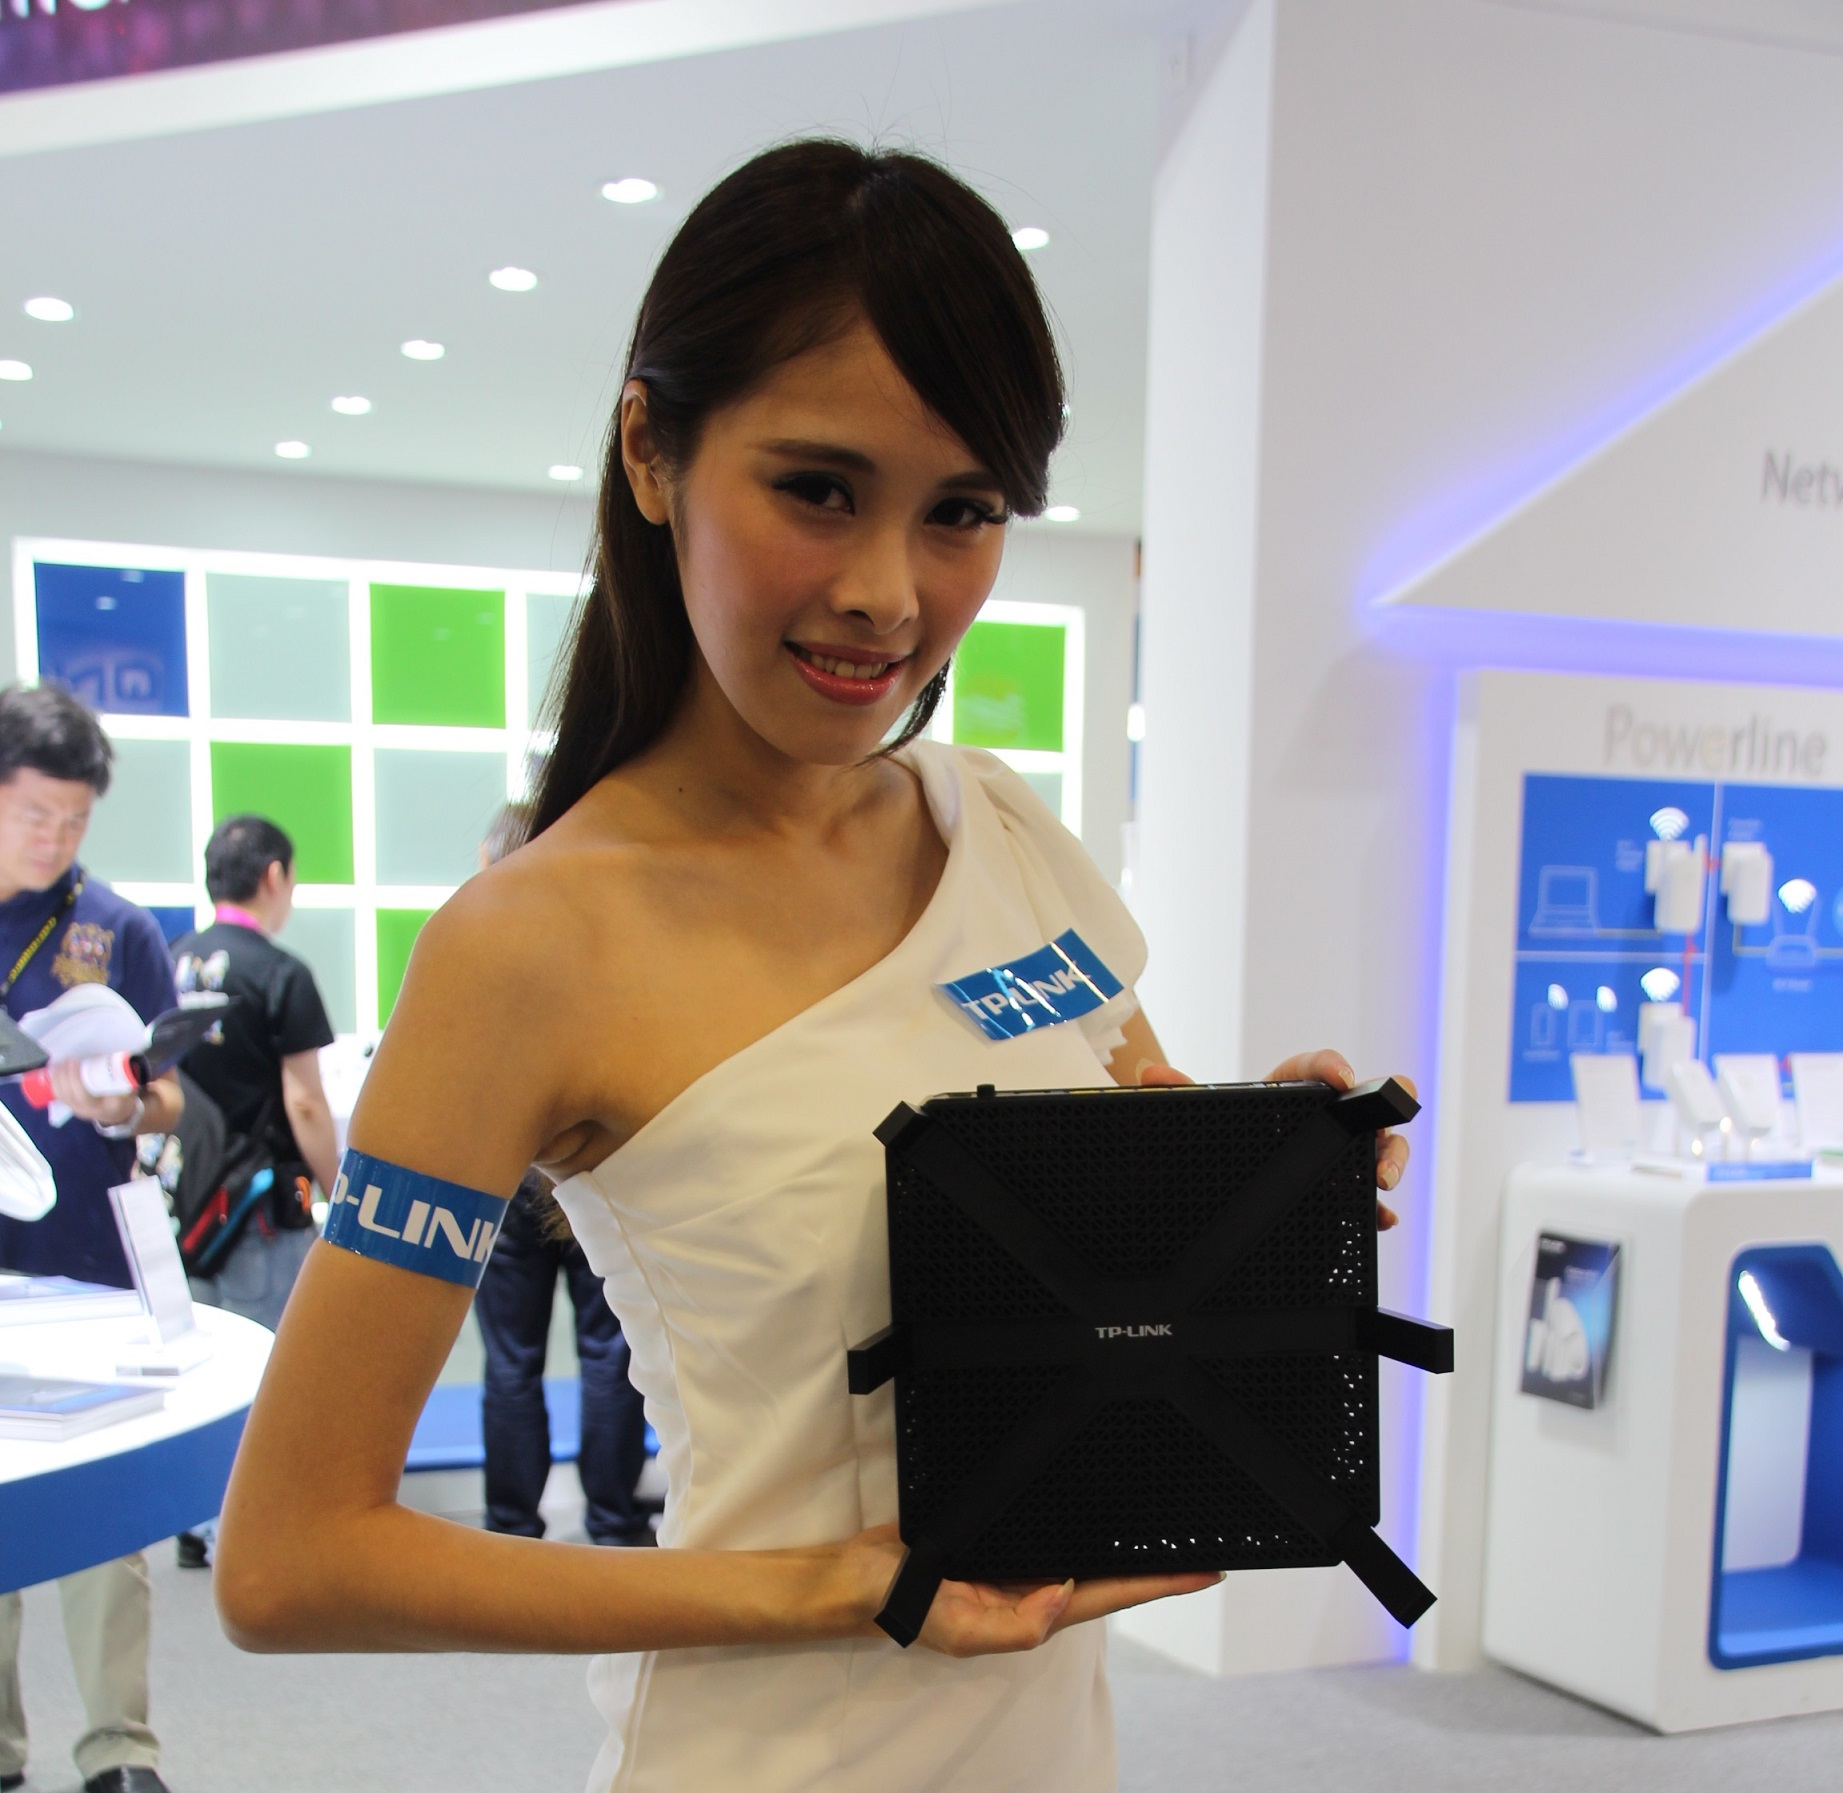 TP-LINK shows off its Archer C3200 tri-band router during Computex Taipei on Thursday.